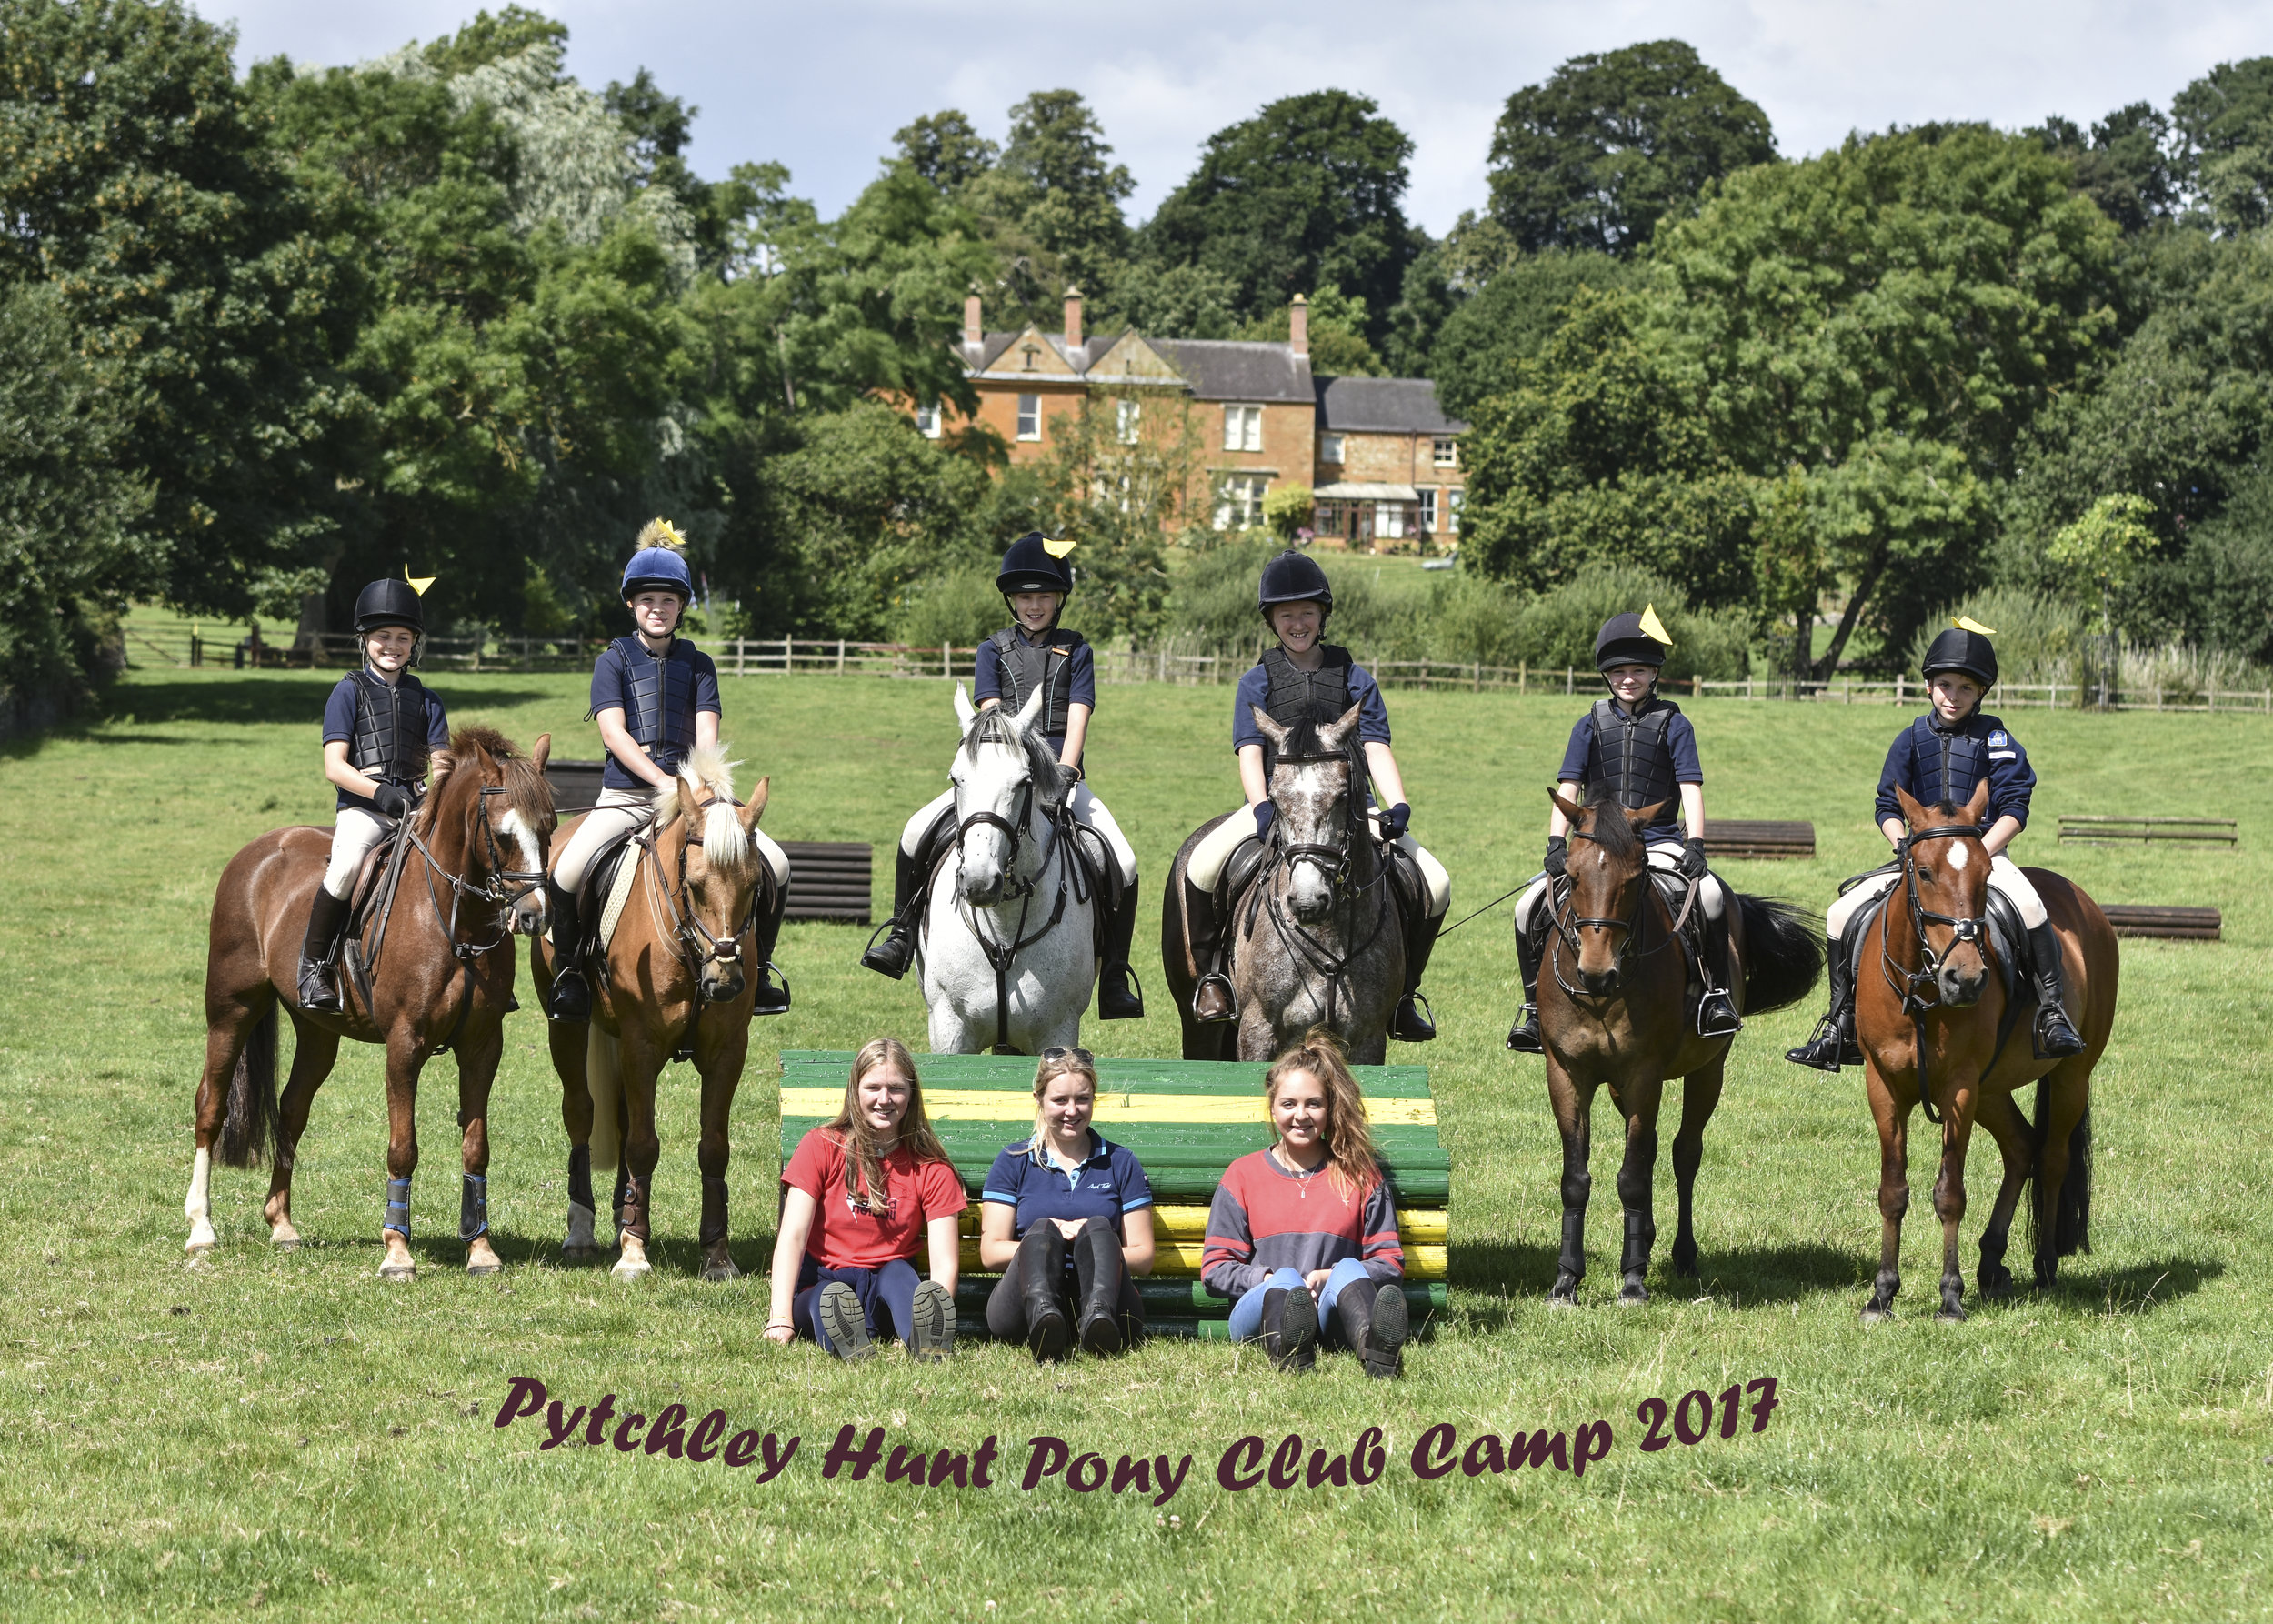 Pytchley Hunt Junior Camp 2017